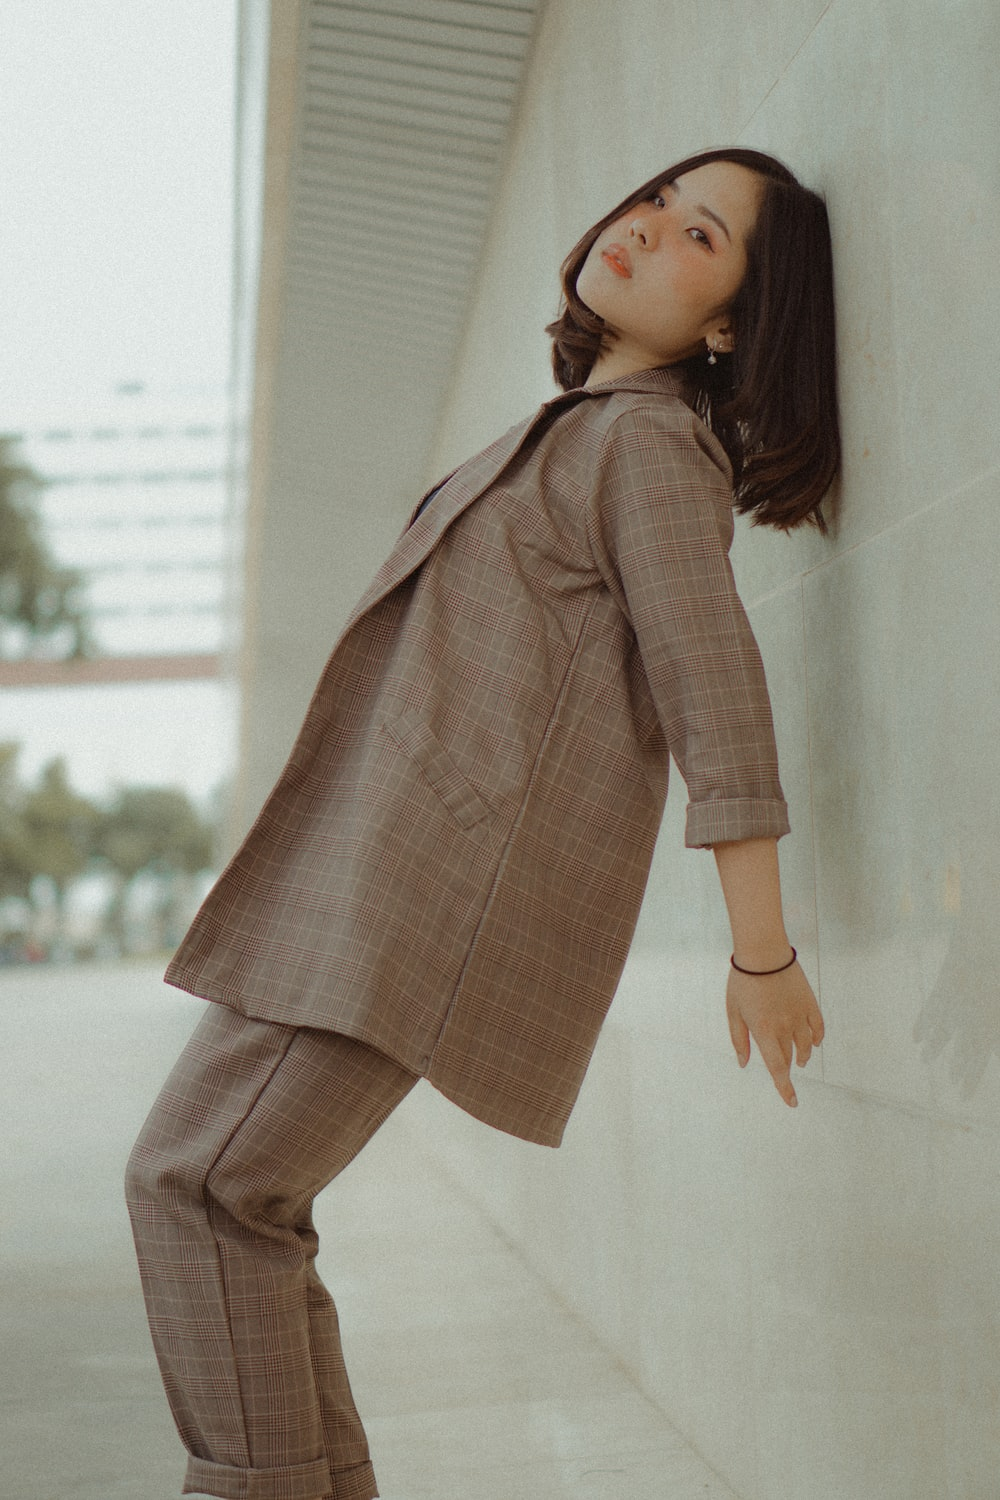 woman wearing brown blazer and pants leaning on wall